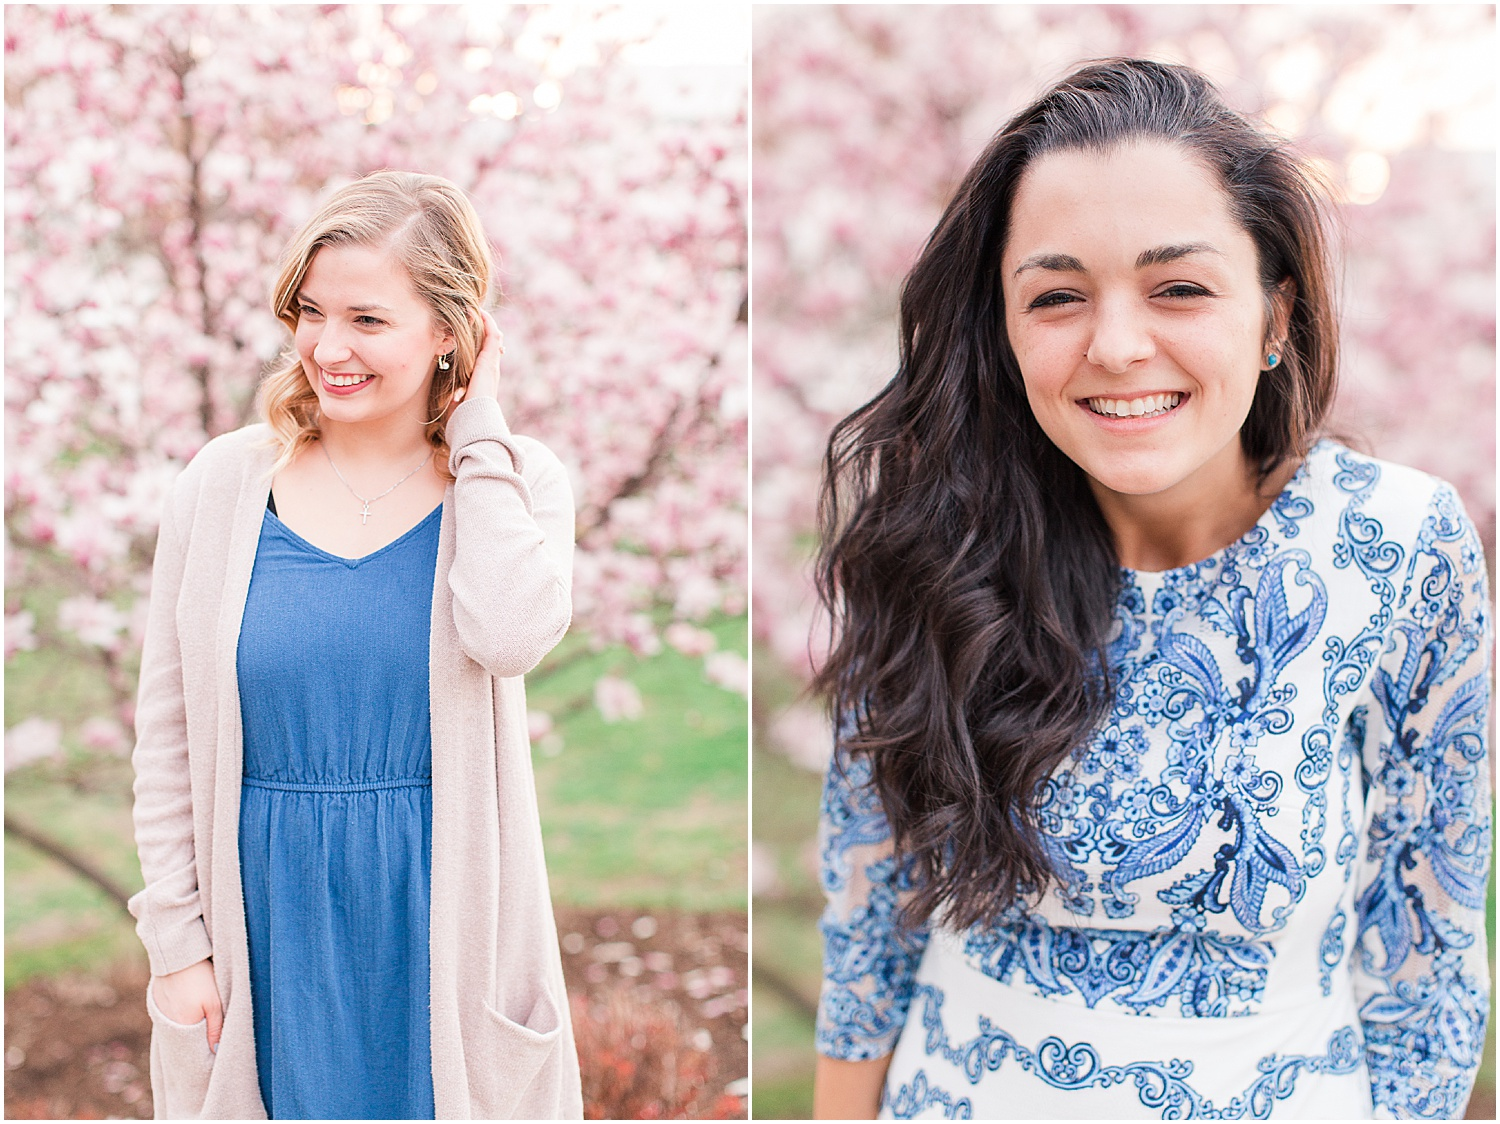 Steubenville Ohio Spring Senior Session Photos_0799.jpg